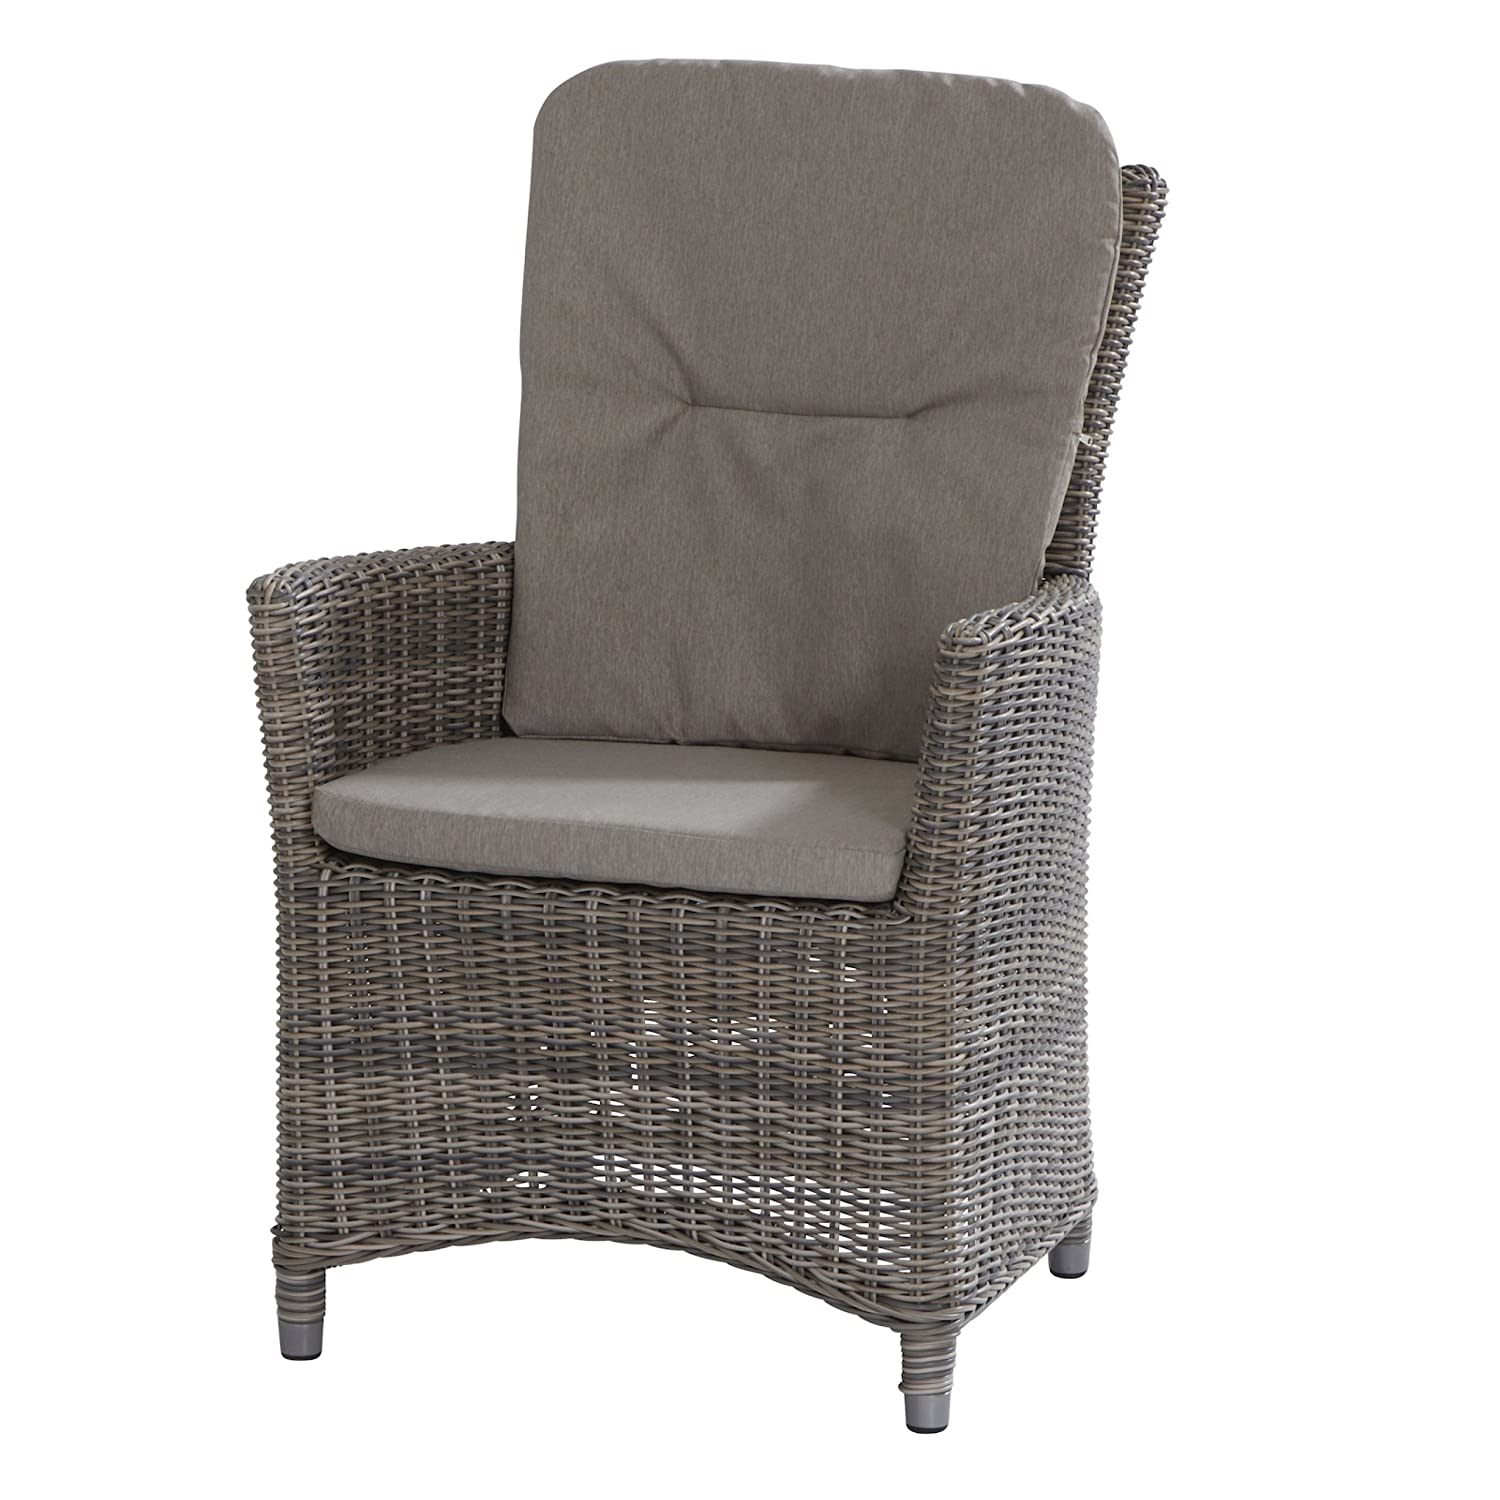 Aqua-Saar Dining Sessel Athen Polyrattan Roca light grey inkl. 2 Kissen AS37798